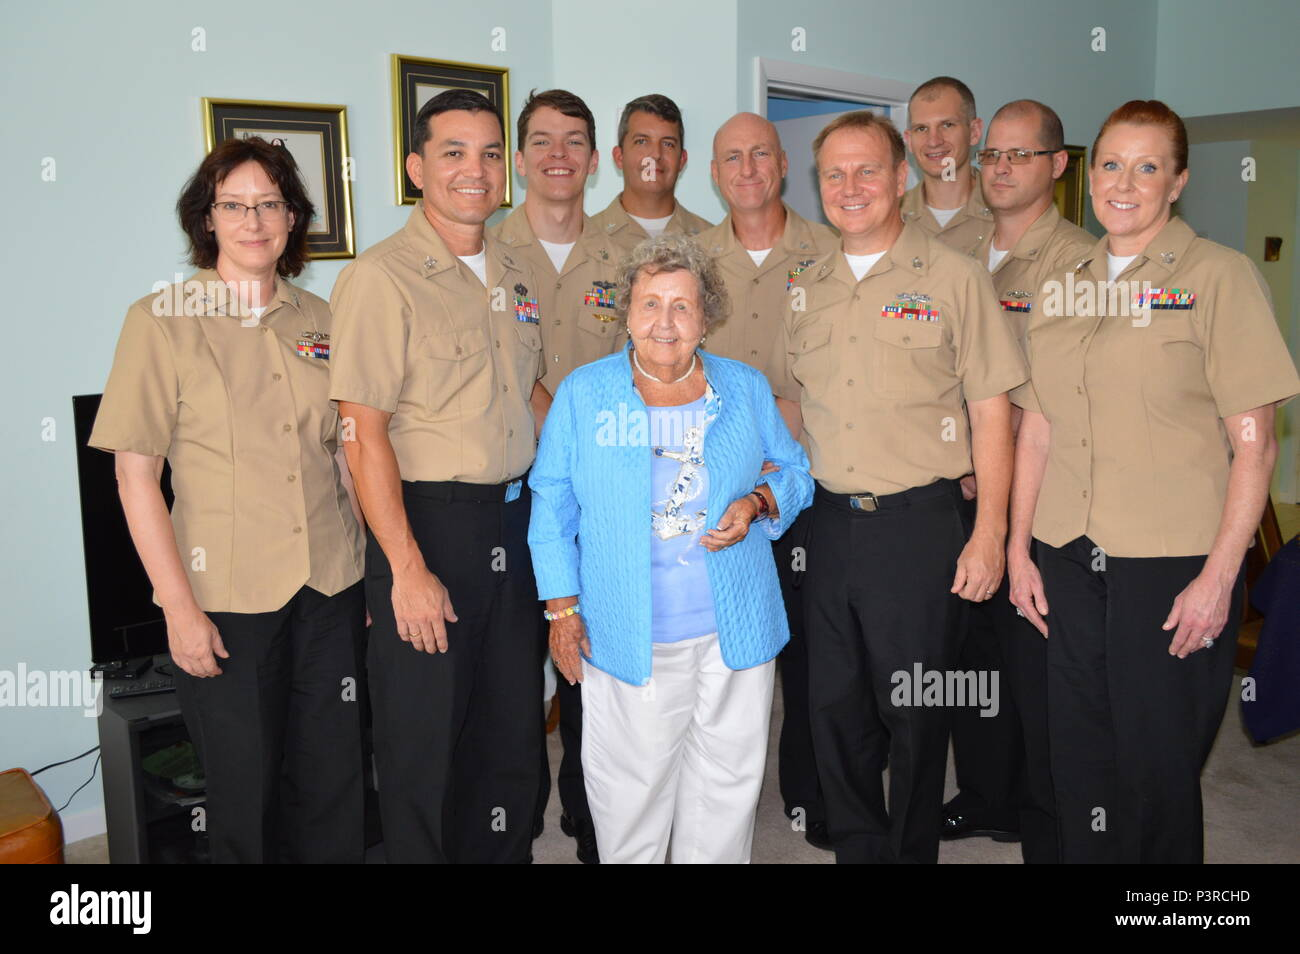 Mrs. Ima Black, the wife of the late Master Chief Petty Officer of the Navy (MCPON) Delbert Black, and the FY17 NOSC Orlando Chief Selects (L-R) ISC (SEL) Patricia Montgomery, EOC (SEL) Jhon Ballesteros, CTRC(sel) Drew Butikofer, ITC (SEL) Jeremy Worrells, MAC (SEL) Richard Carter, ETC (SEL) JeffreyTiner, OSC (SEL) Jonathan Scherach, ETRC (SEL) Matthew Rosenquist, and BMC (SEL) Angela Russell in Orlando, Fla., July 30, 2016.  (U.S. Navy photo by Chief Mass Communication Specialist Mark R. Richardson) - Stock Image